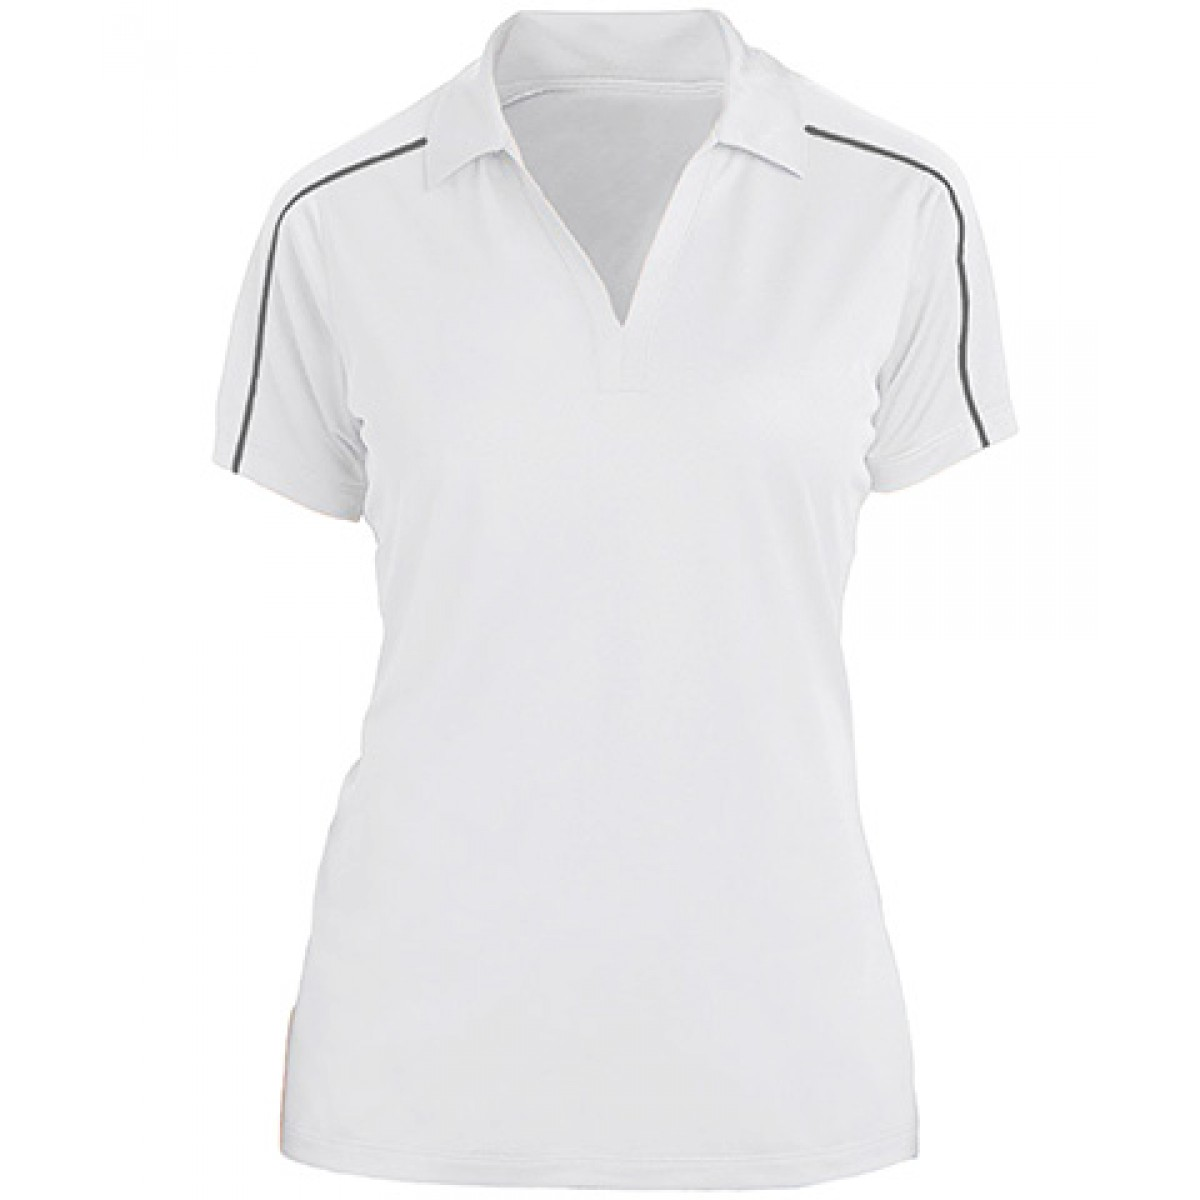 Sport-Tek Womens Piped Short Sleeve Polo -White-2XL